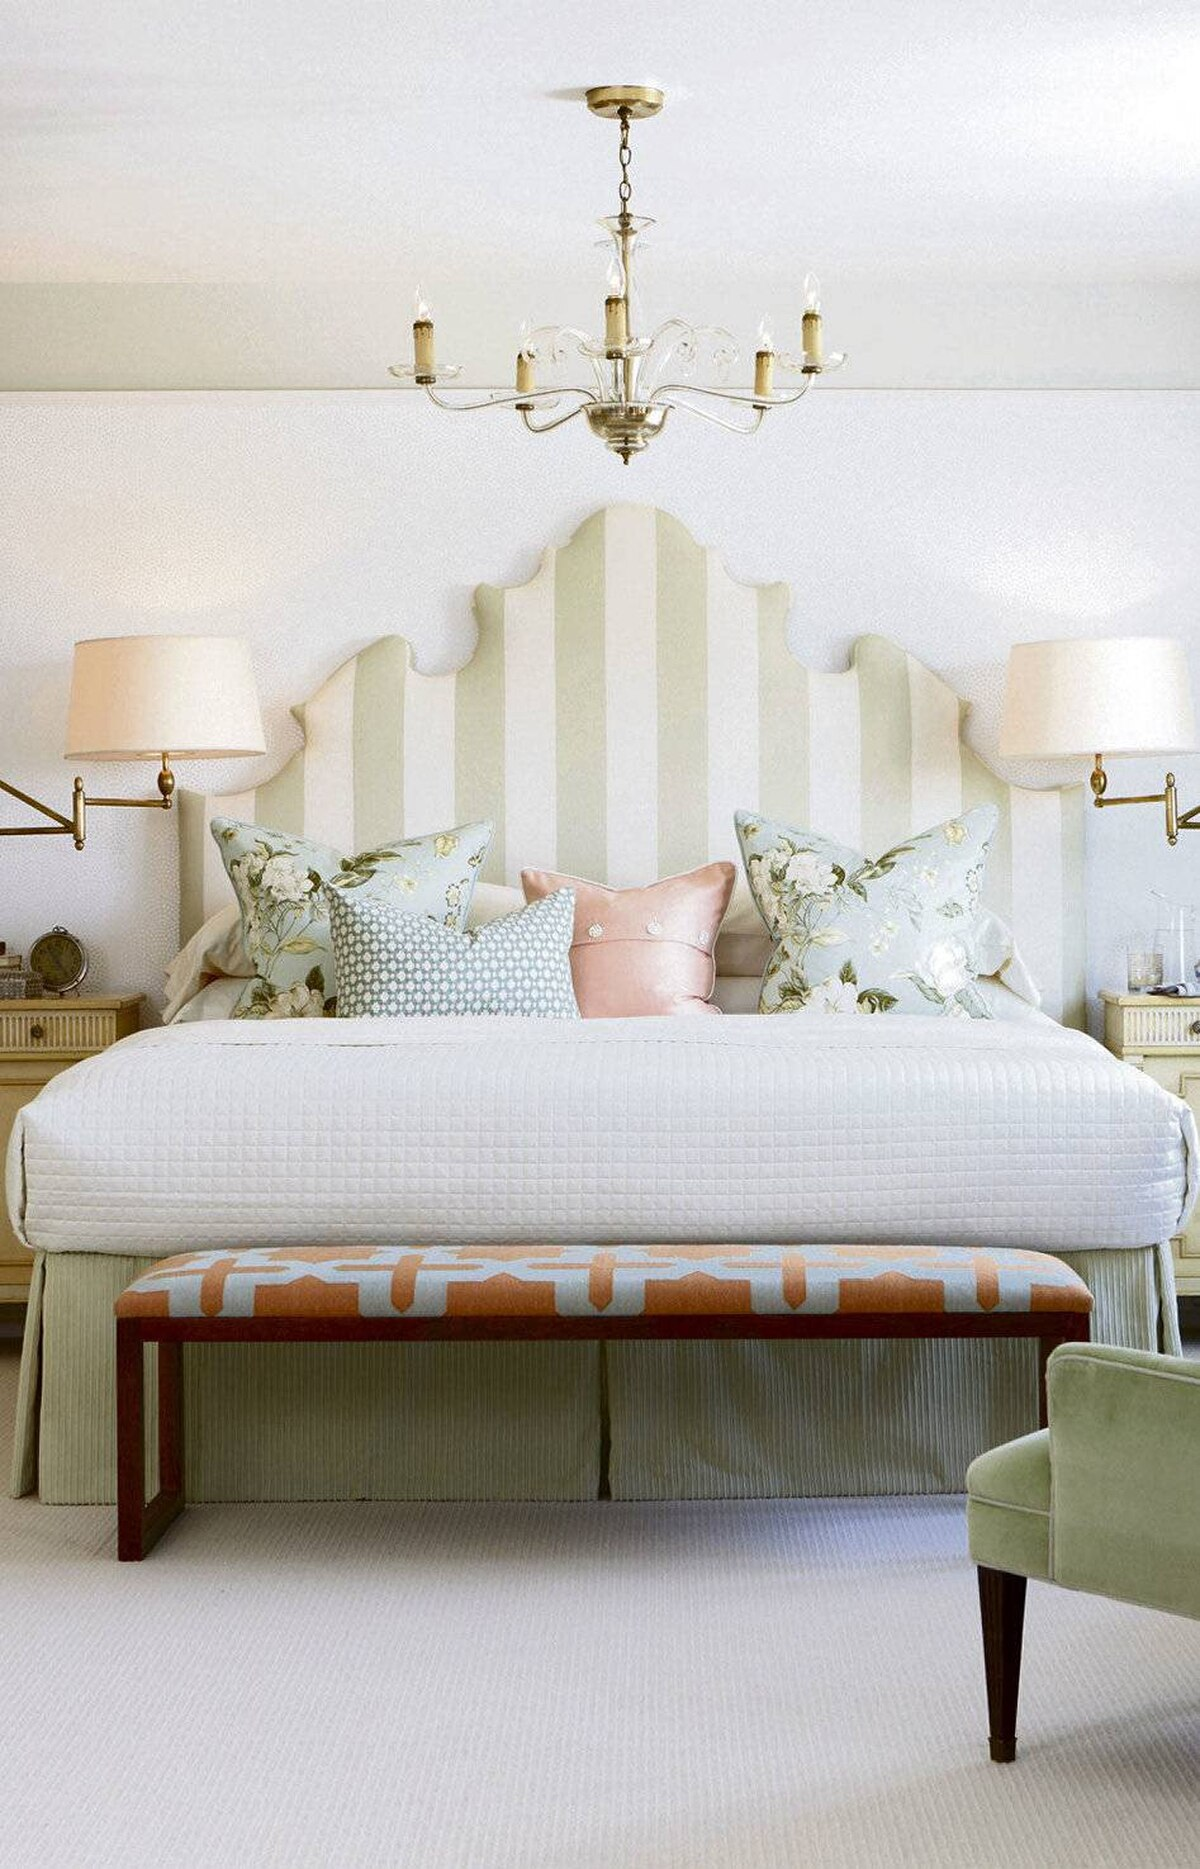 THE LOOK When faced with the challenge recently of bringing spirit and soul to a bland, oversized box of a bedroom, I relied on a light and airy garden palette to create a restful retreat and bring the glory of the coming spring indoors.